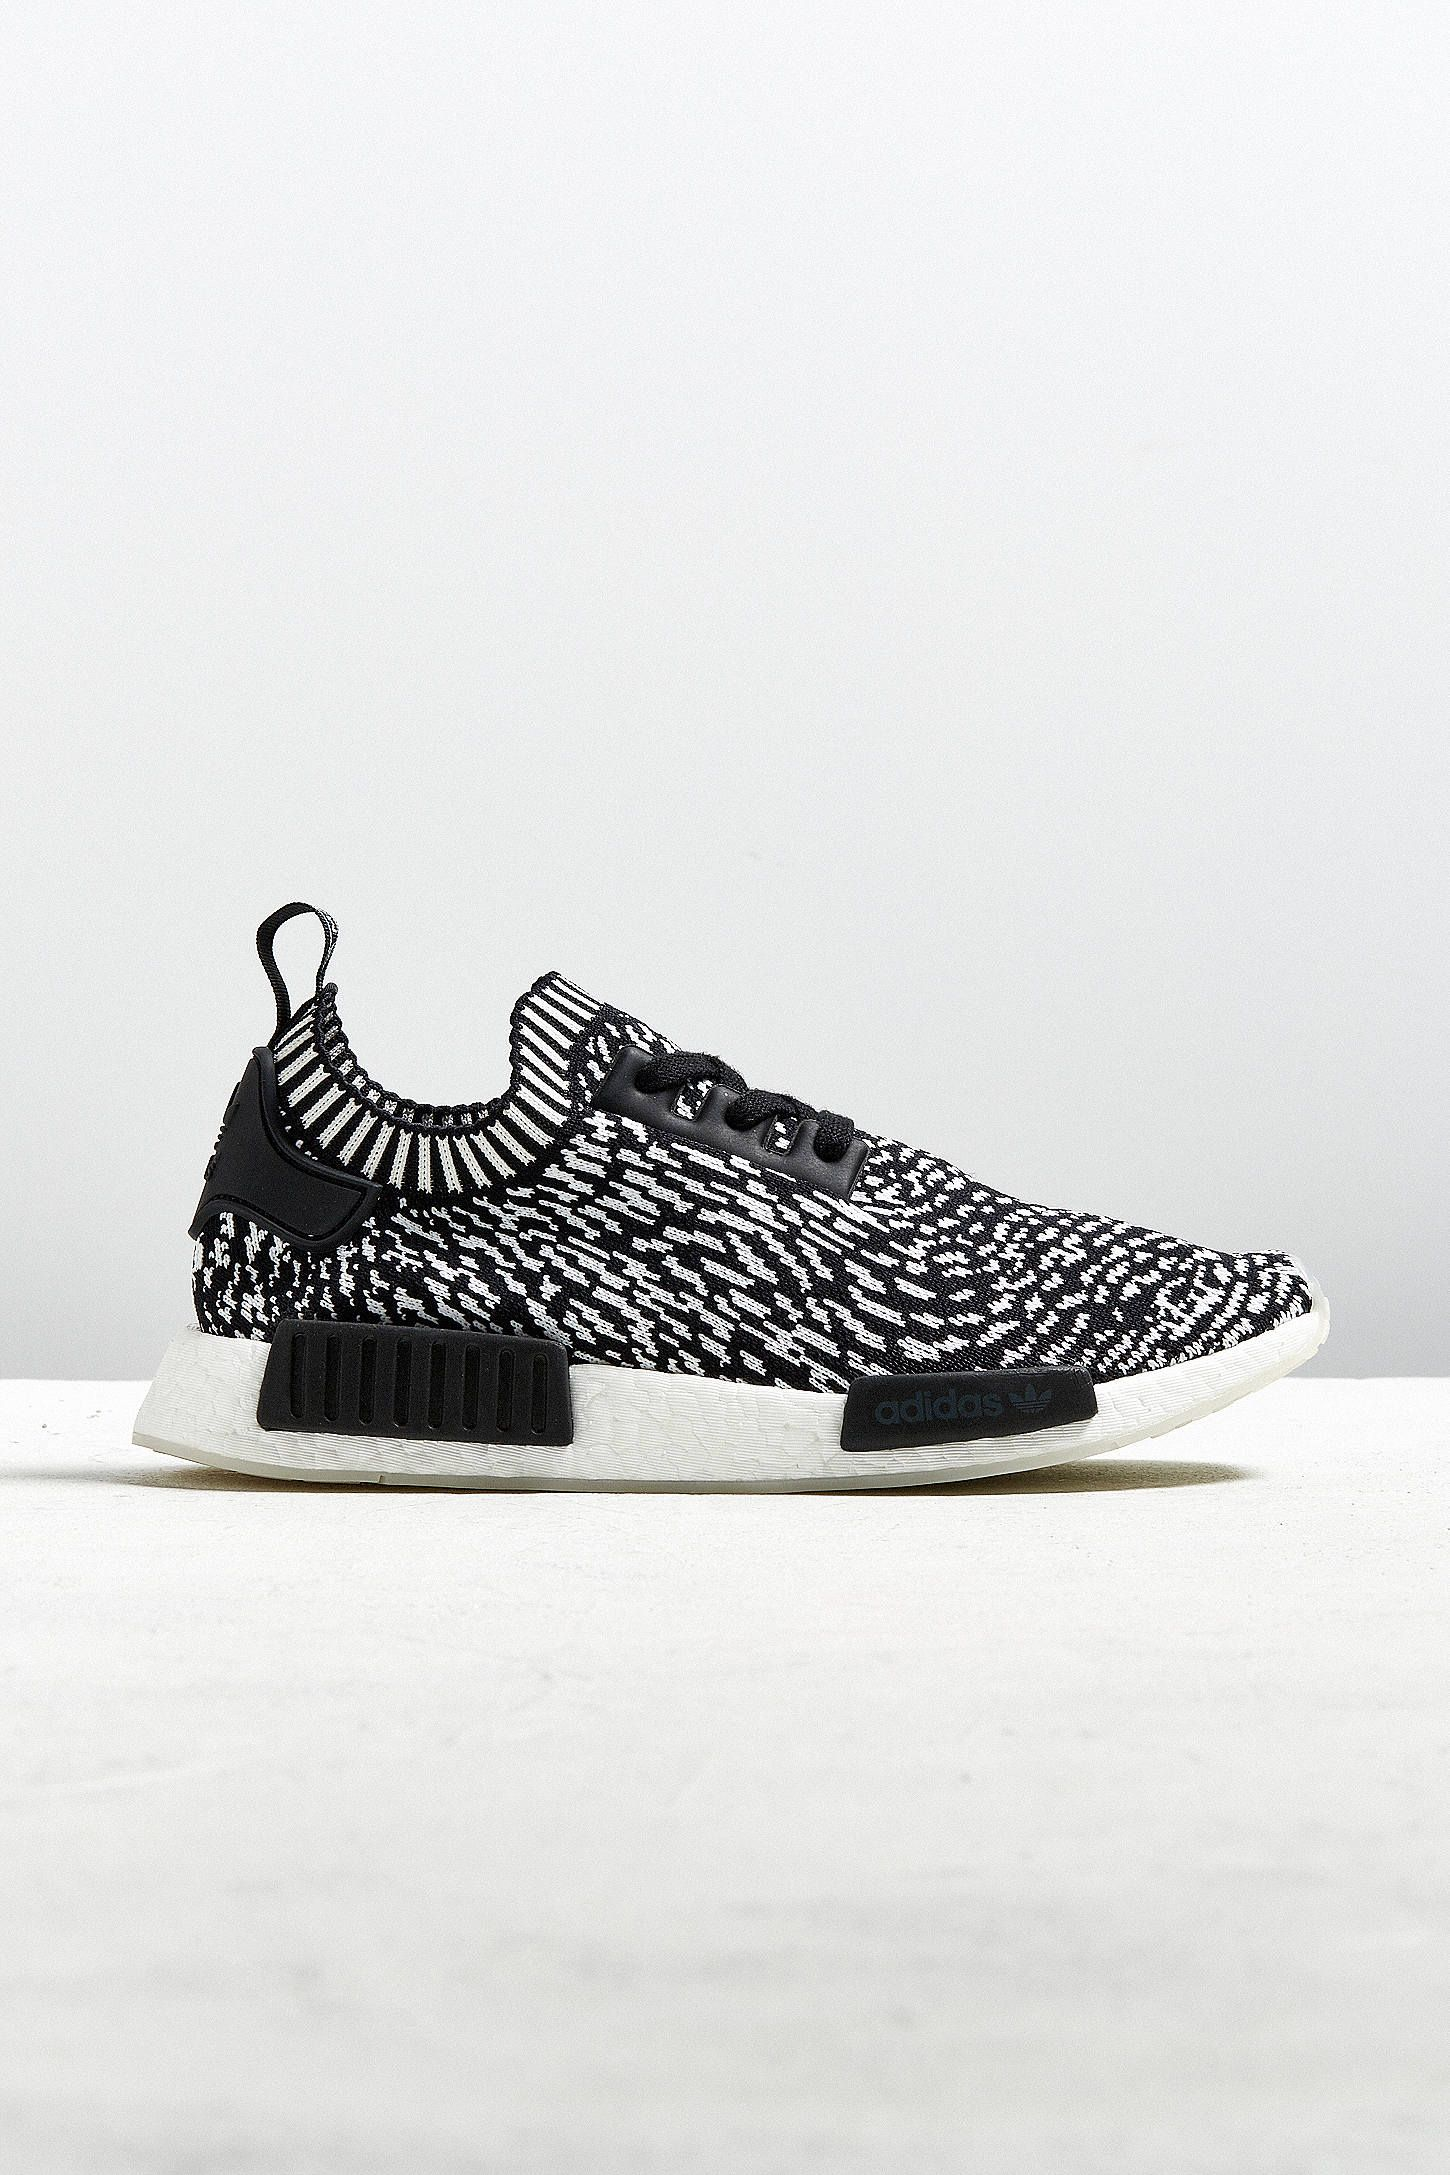 ee3bb442aa96c Shop adidas NMD R1 Spotted Primeknit Sneaker at Urban Outfitters today. We  carry all the latest styles